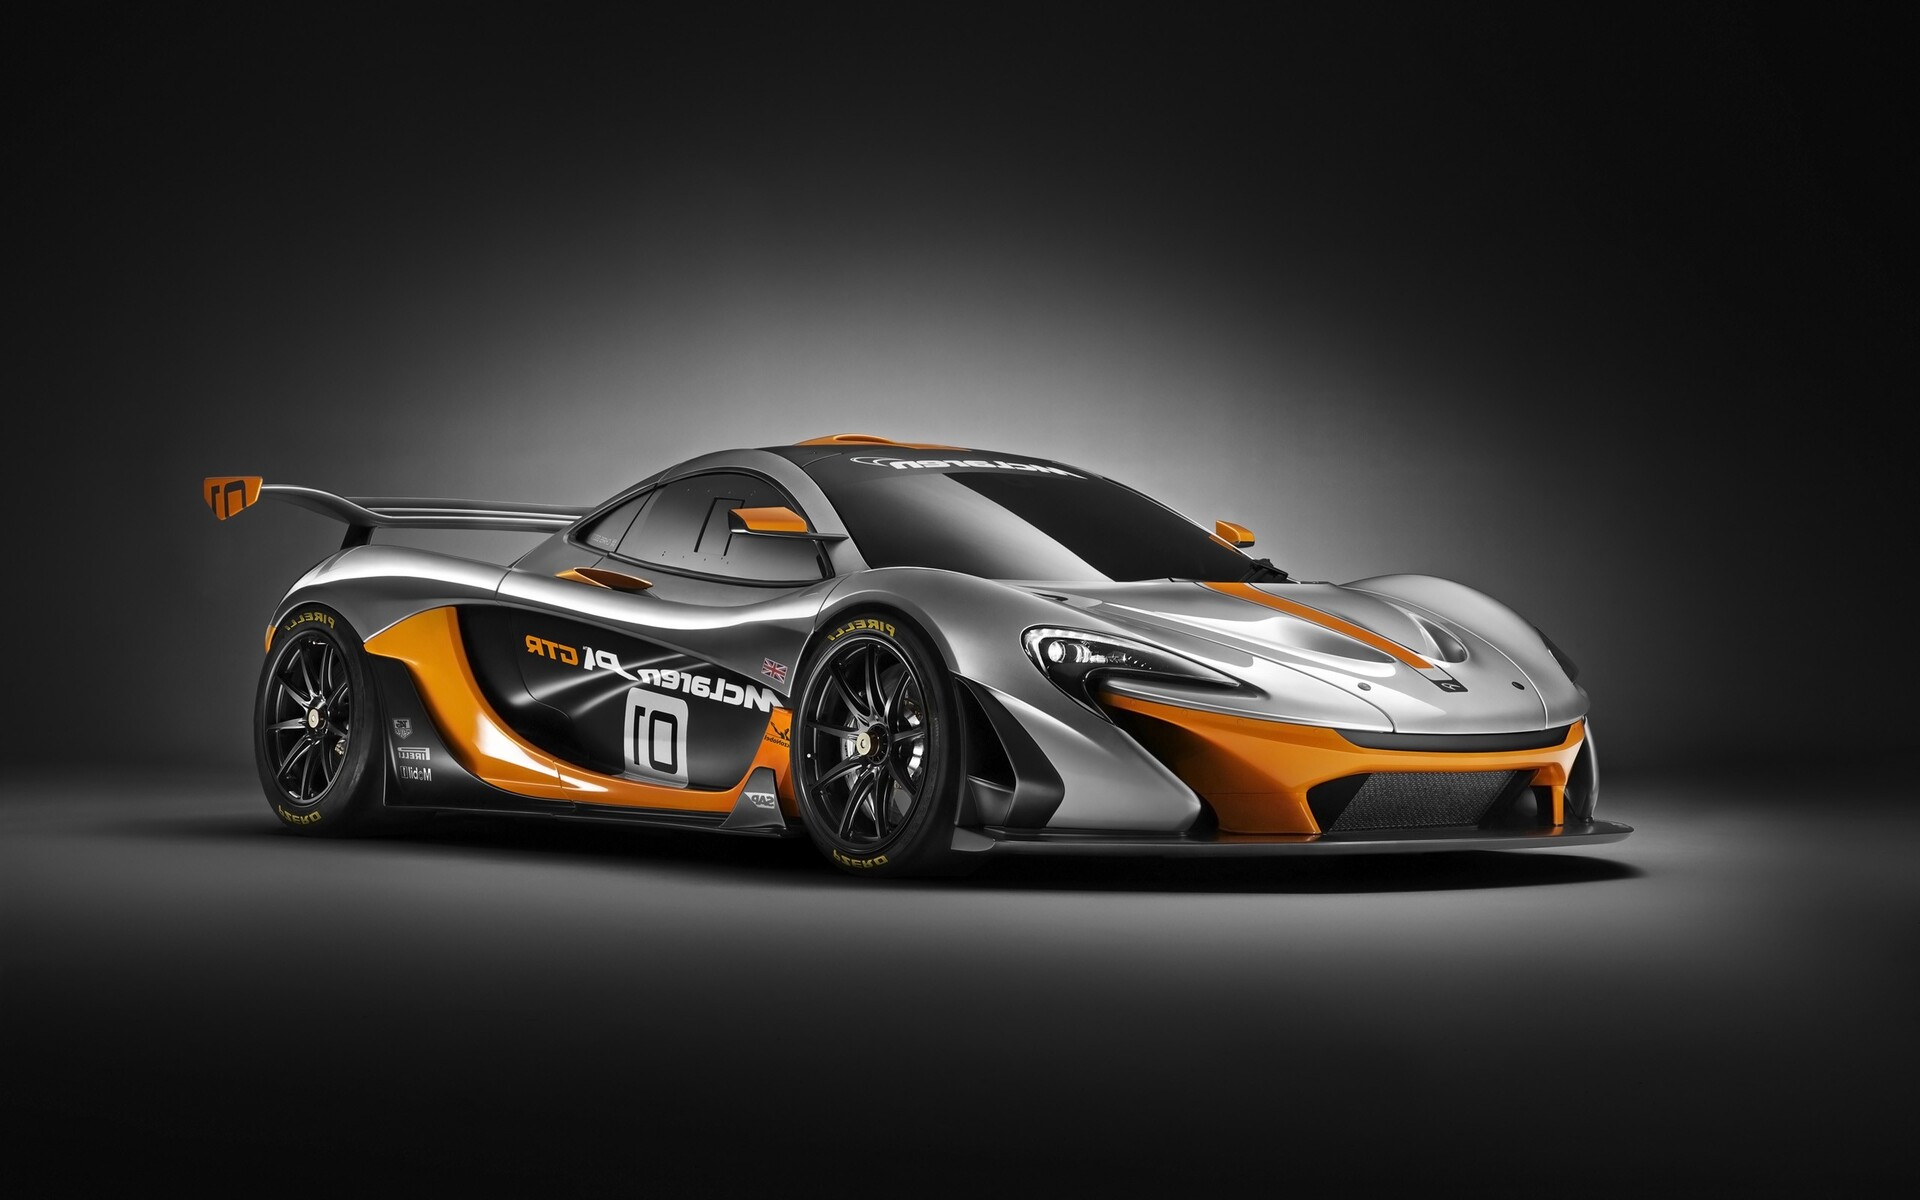 Mclaren P1 Gtr Logo >> 1920x1200 Mclaren P1 GTR Super Car Concept 1080P Resolution HD 4k Wallpapers, Images ...